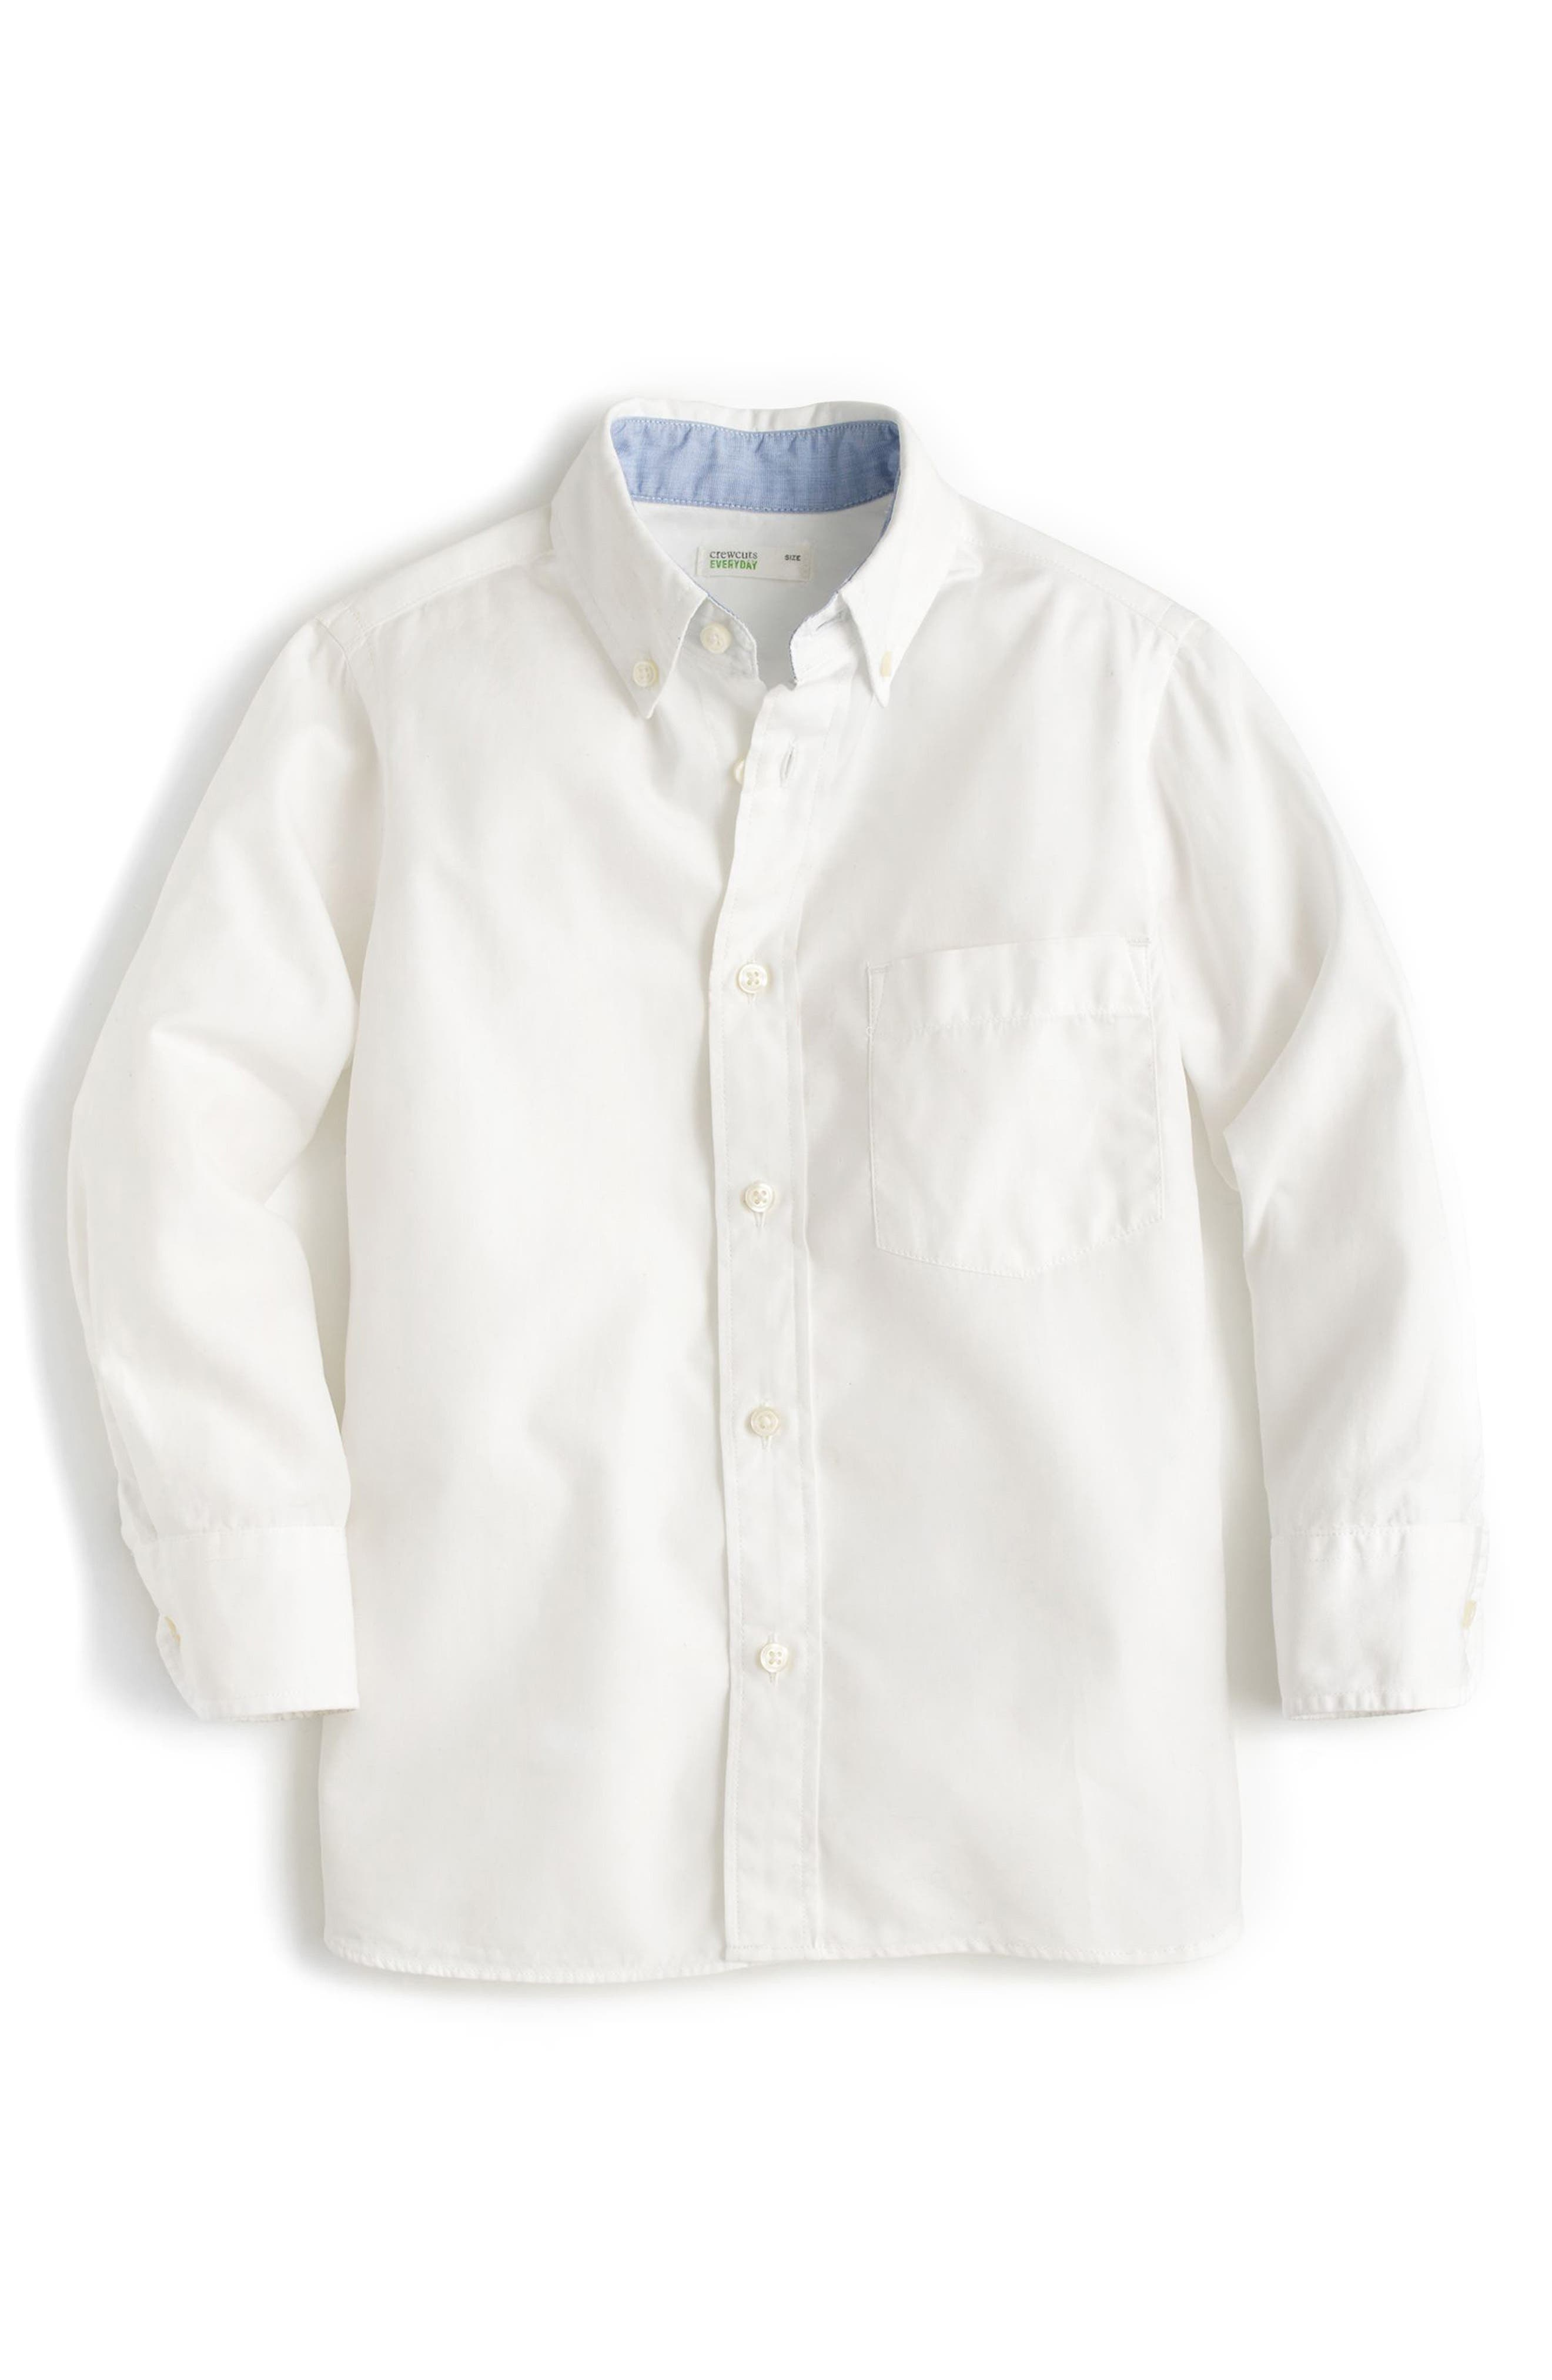 Everyday Button Down Sport Shirt,                         Main,                         color, White